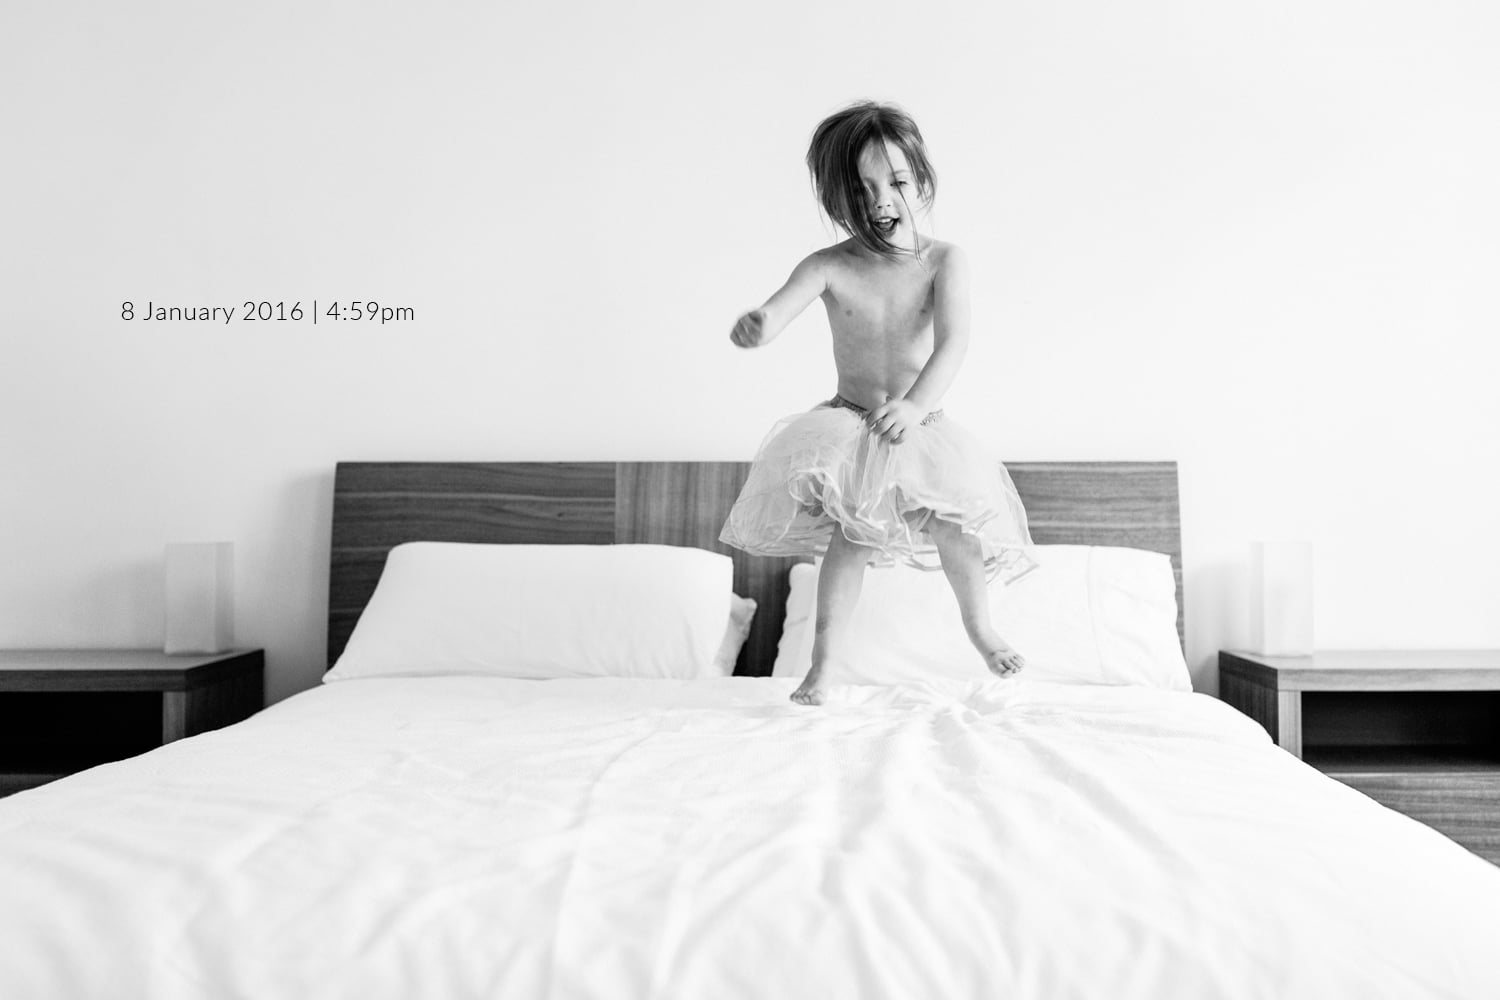 family-photography-photo-a-day-project-day-8